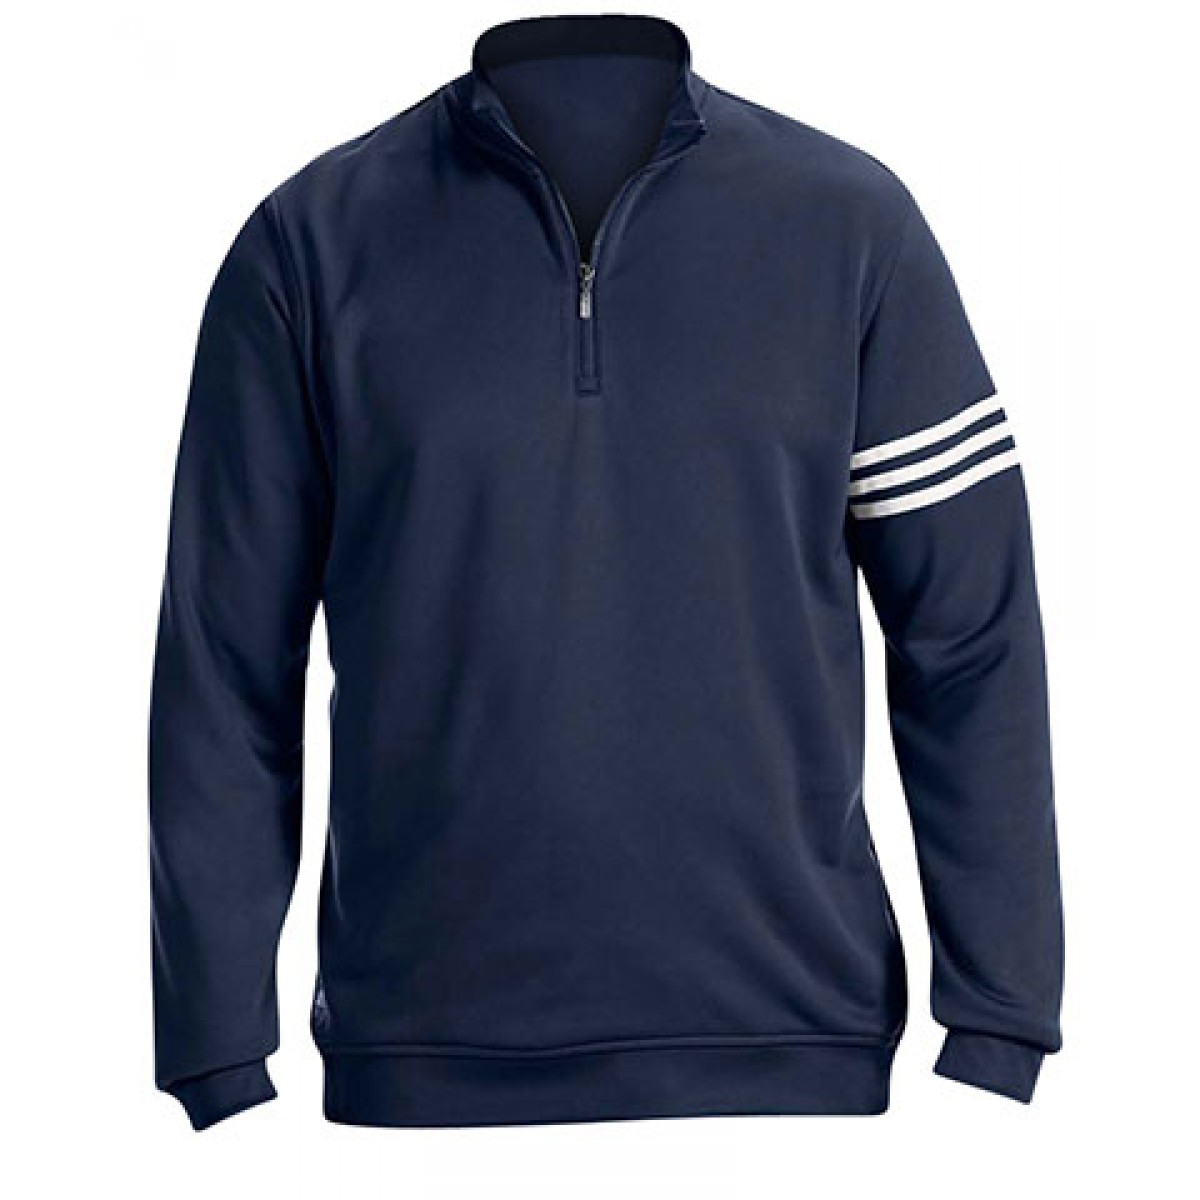 Adidas Men's 3-Stripes Pullover-Navy-S